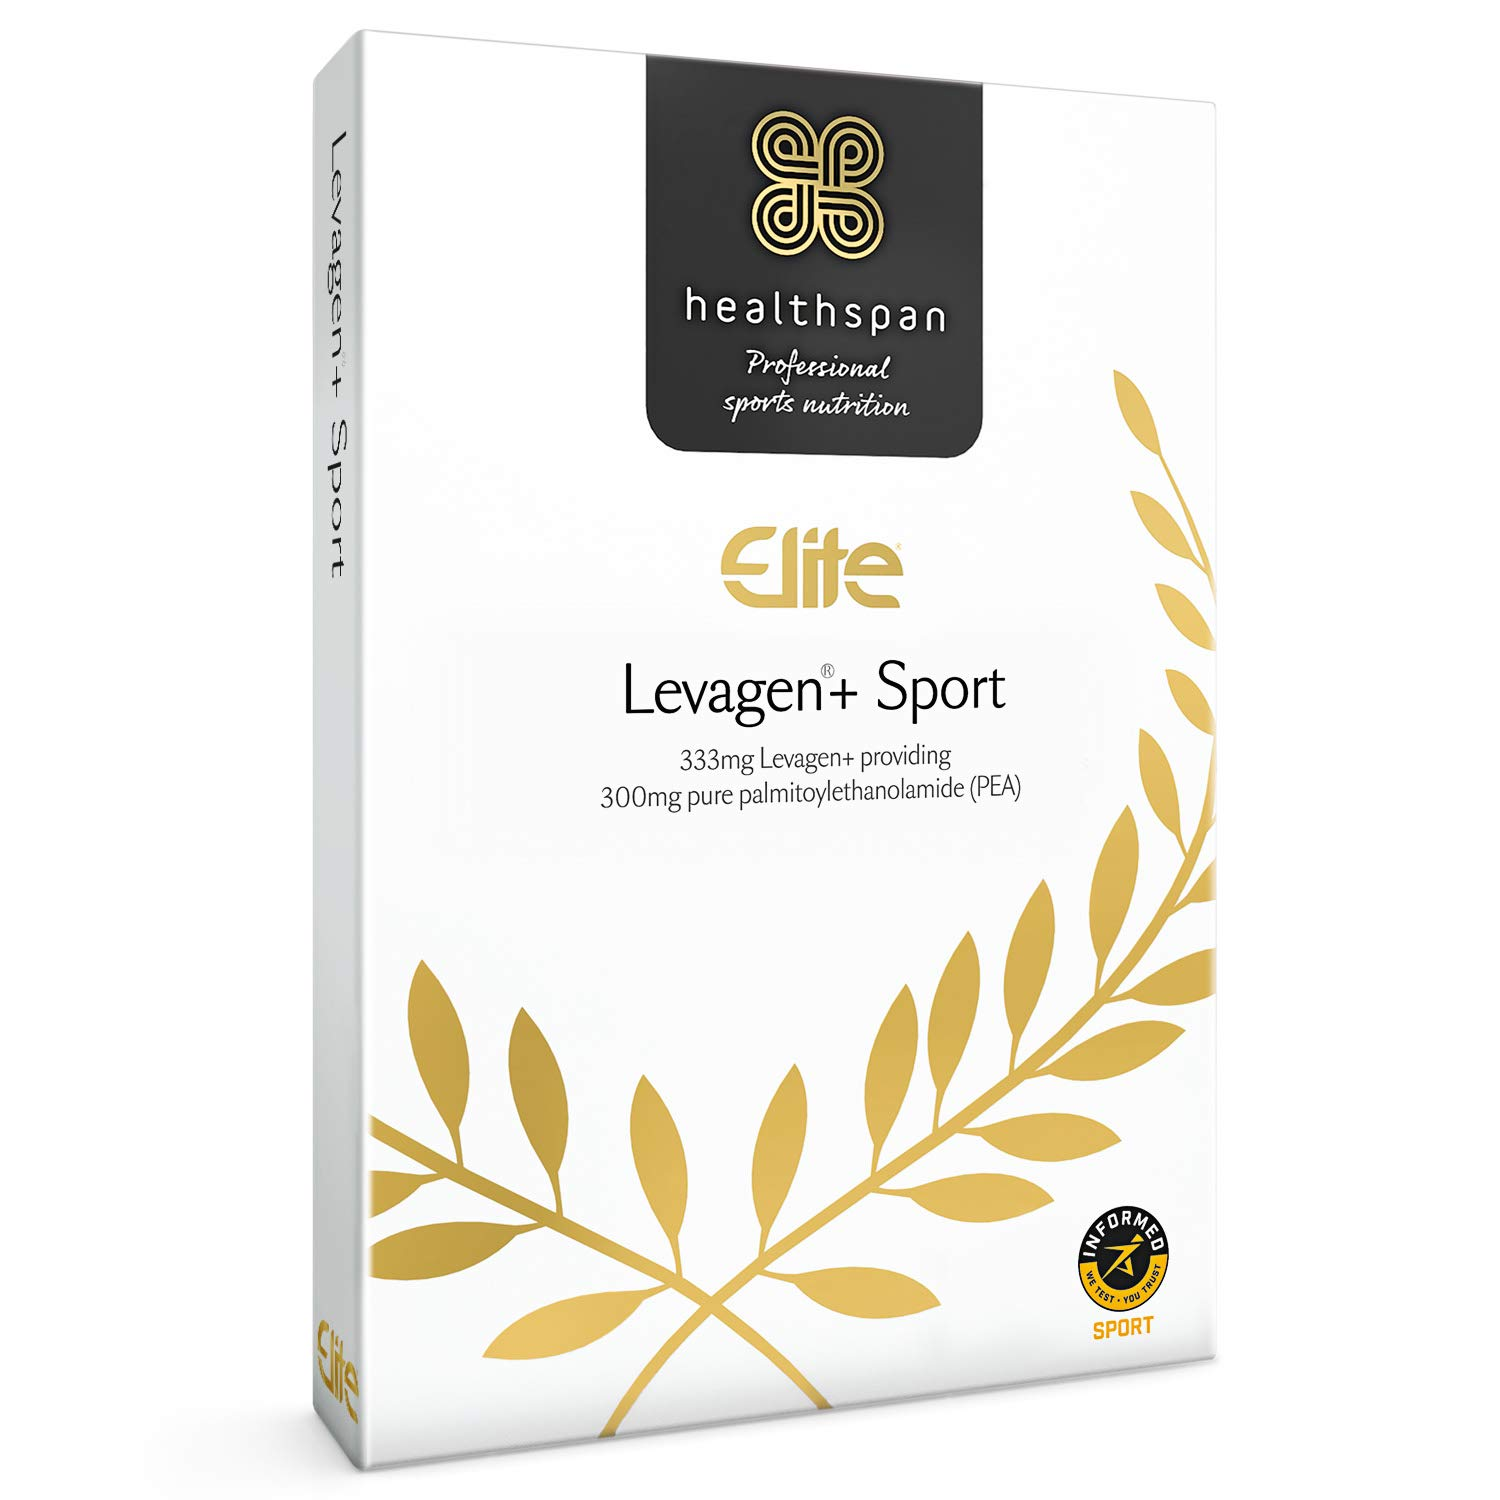 Levagen+ Sport | Healthspan Elite | 60 Capsules | All Blacks Official Partner | Informed Sport Accredited | 300mg Pure Palmitoylethanolamide (Pea) | Batch Tested | Vegan